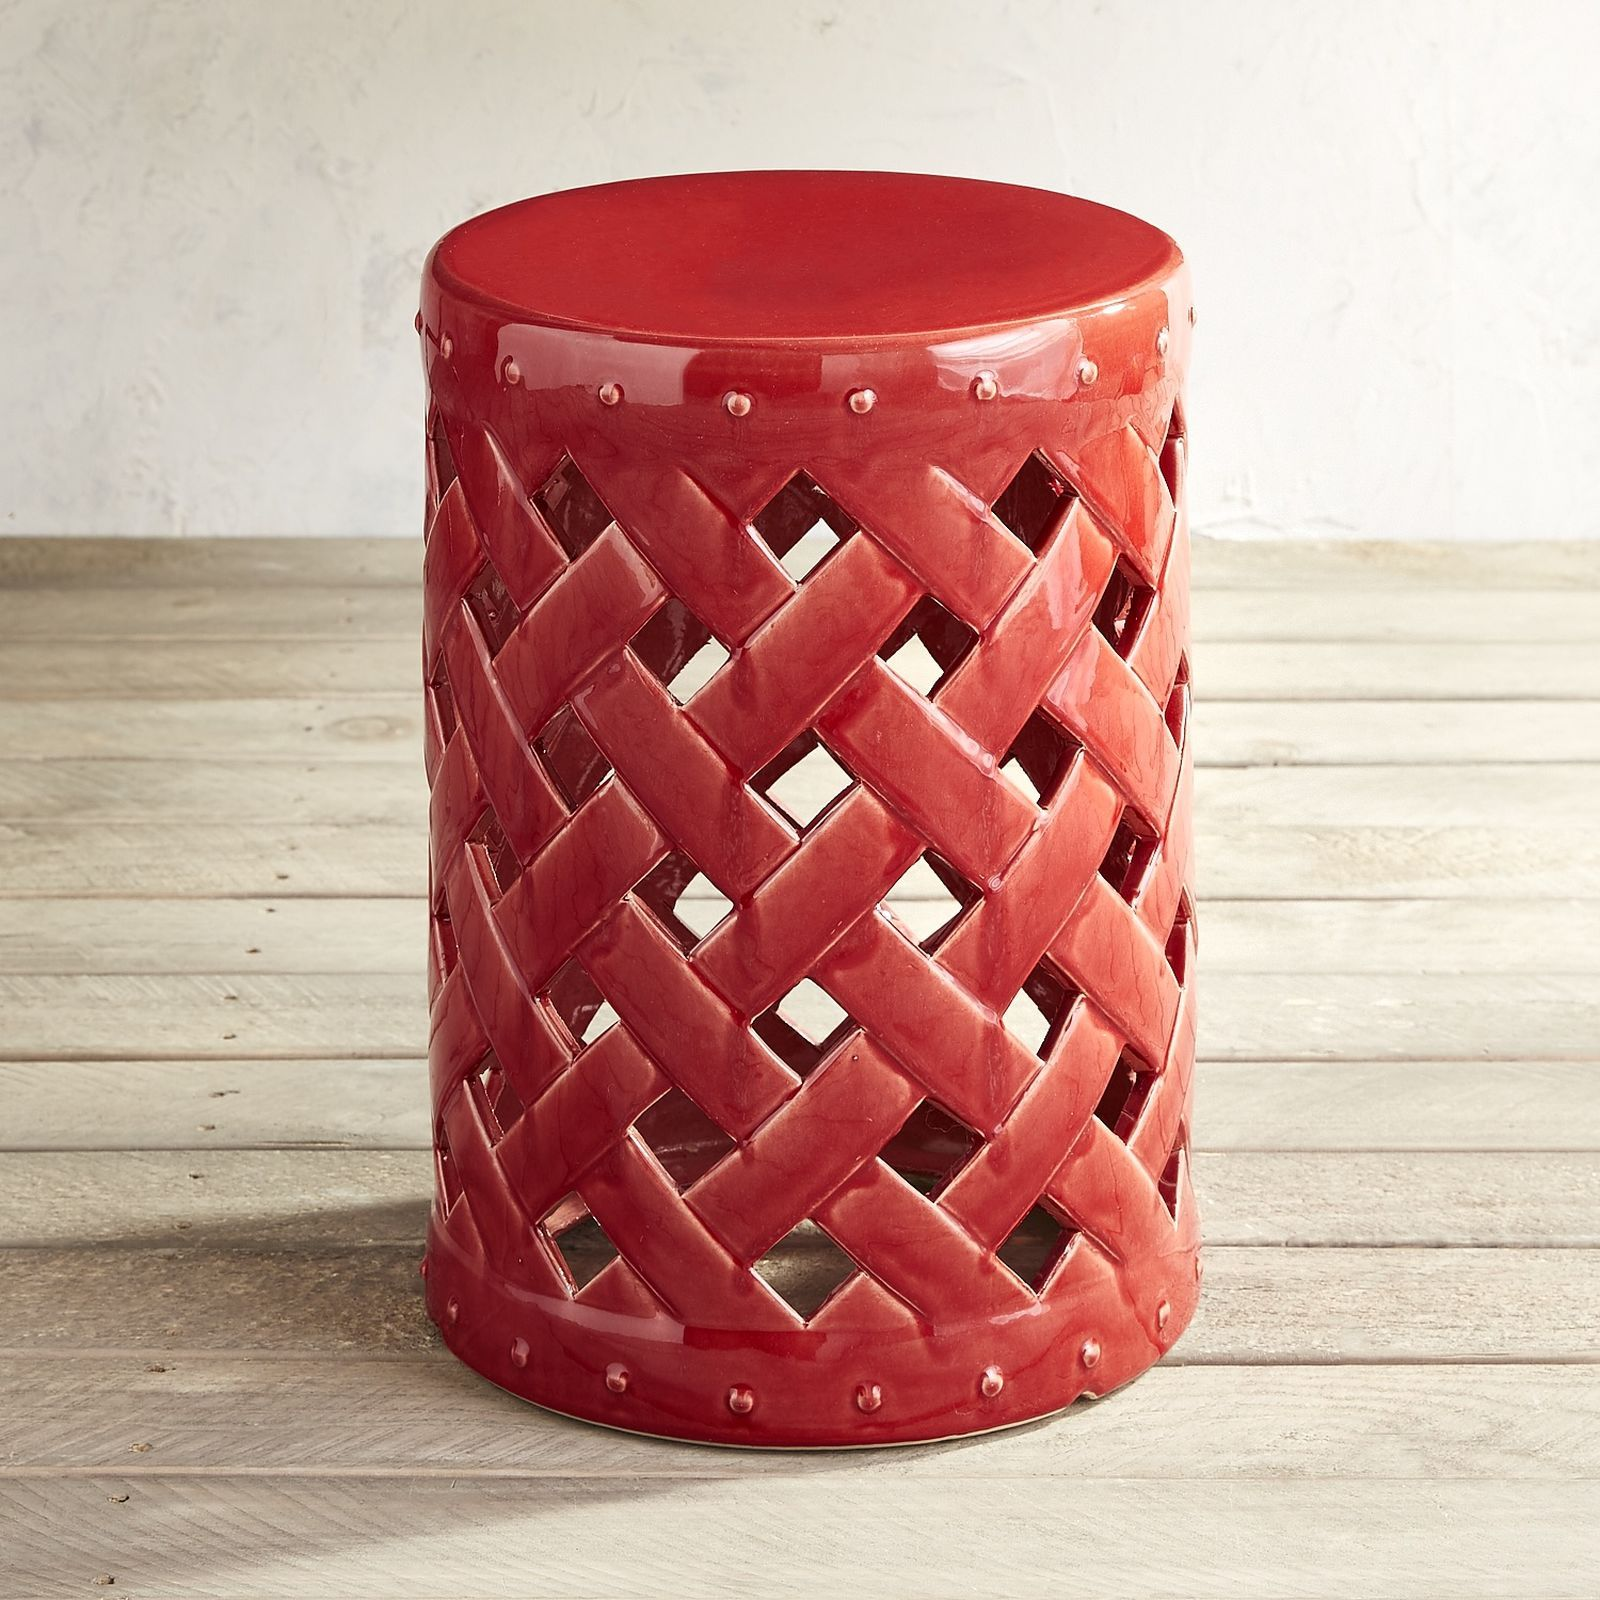 red lattice garden stool spencer ave accent table pier imports large antique wall clock wicker furniture custom butcher block countertops small dining with leaf dark mango wood